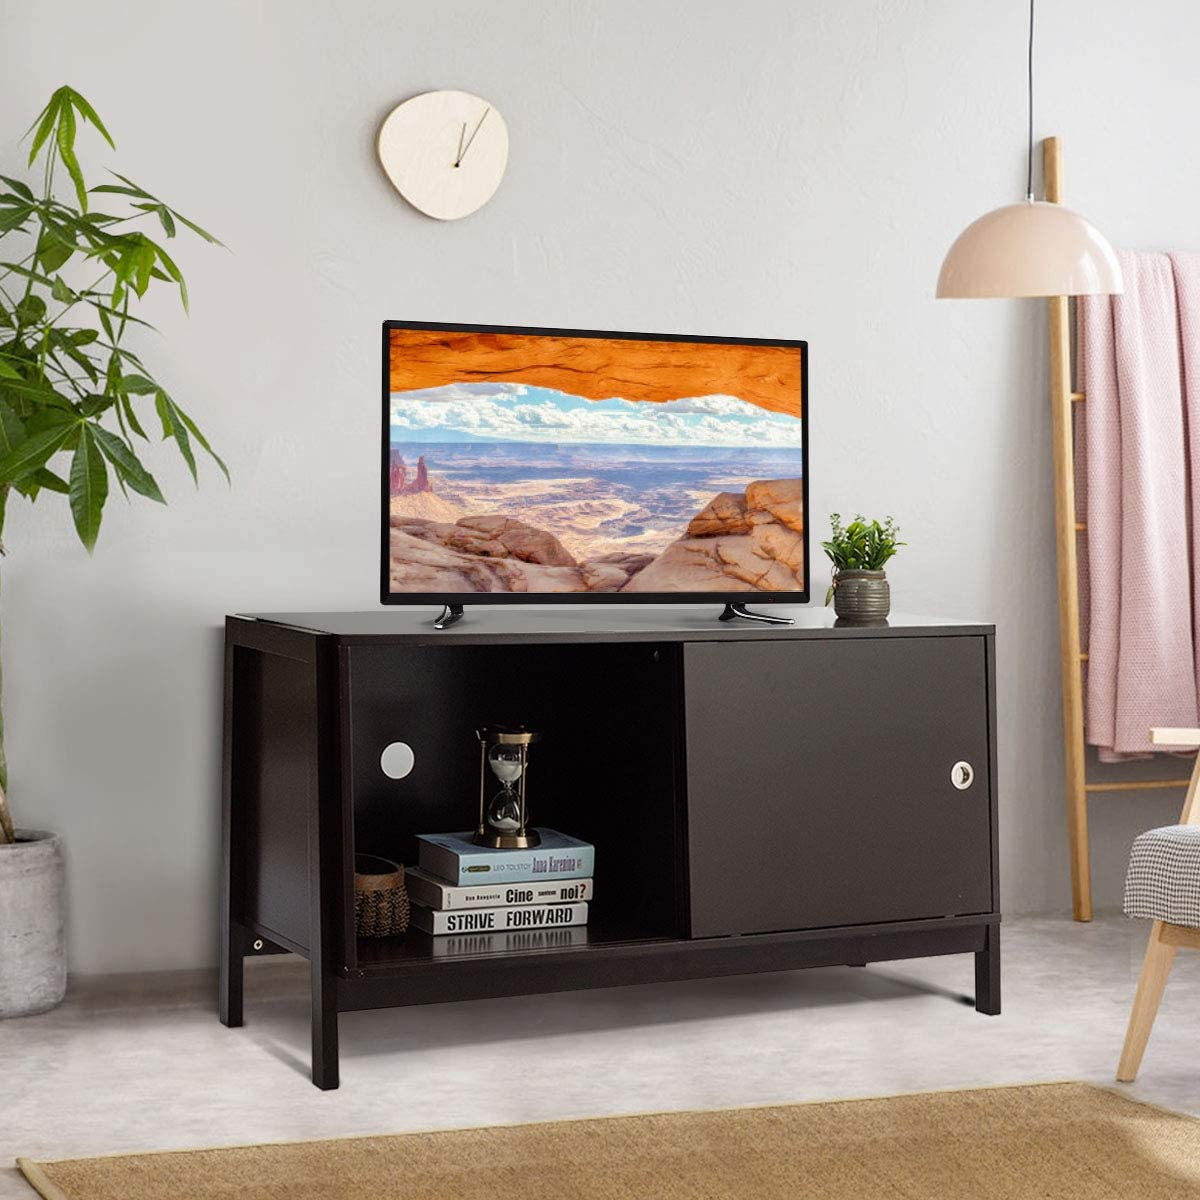 Tangkula Wooden TV Stand